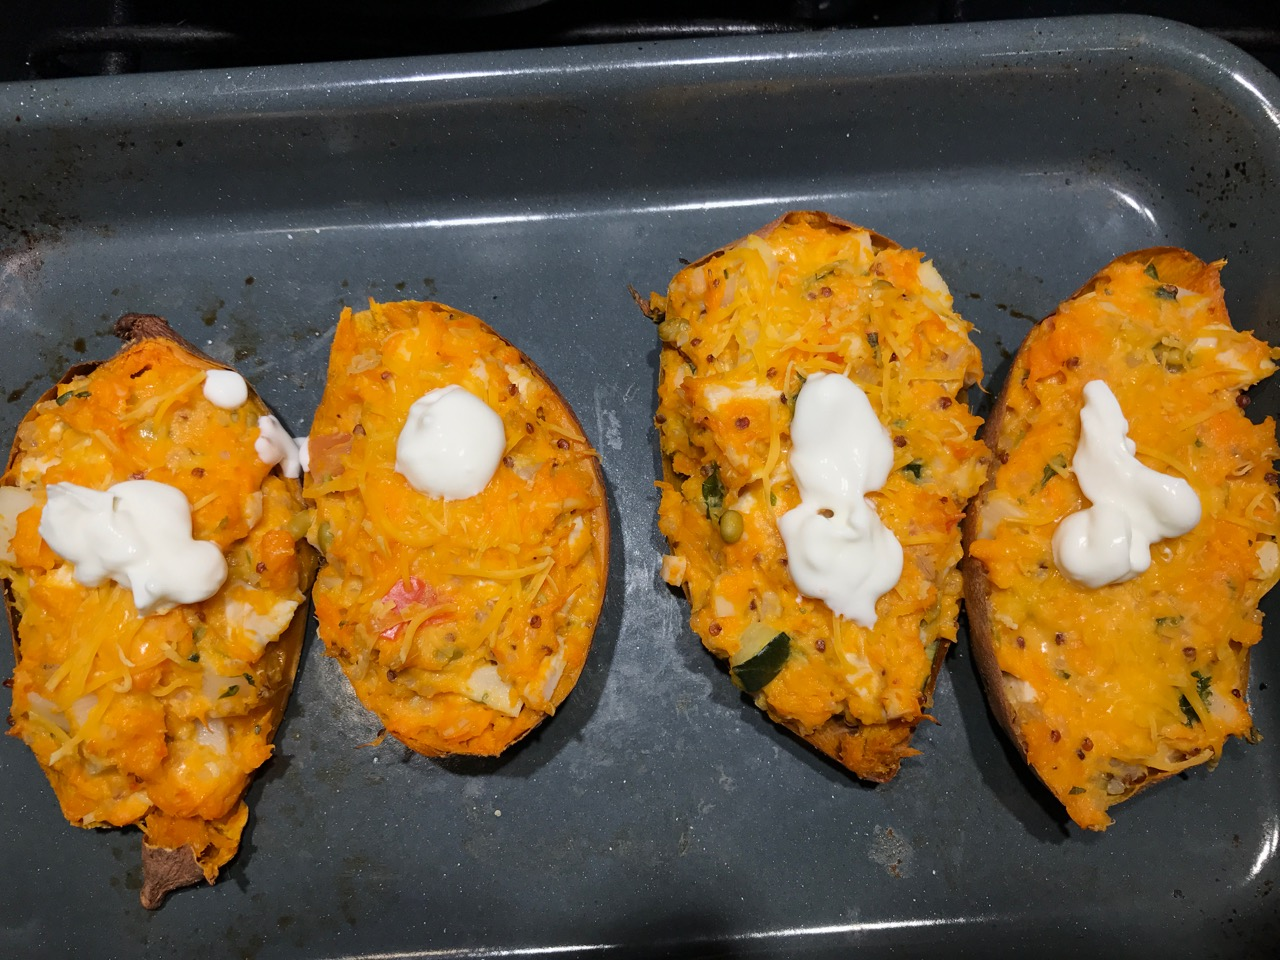 Twice Baked Chicken Quinoa Sweet Potatoes Cooking With Leftovers When You Refuse To Waste